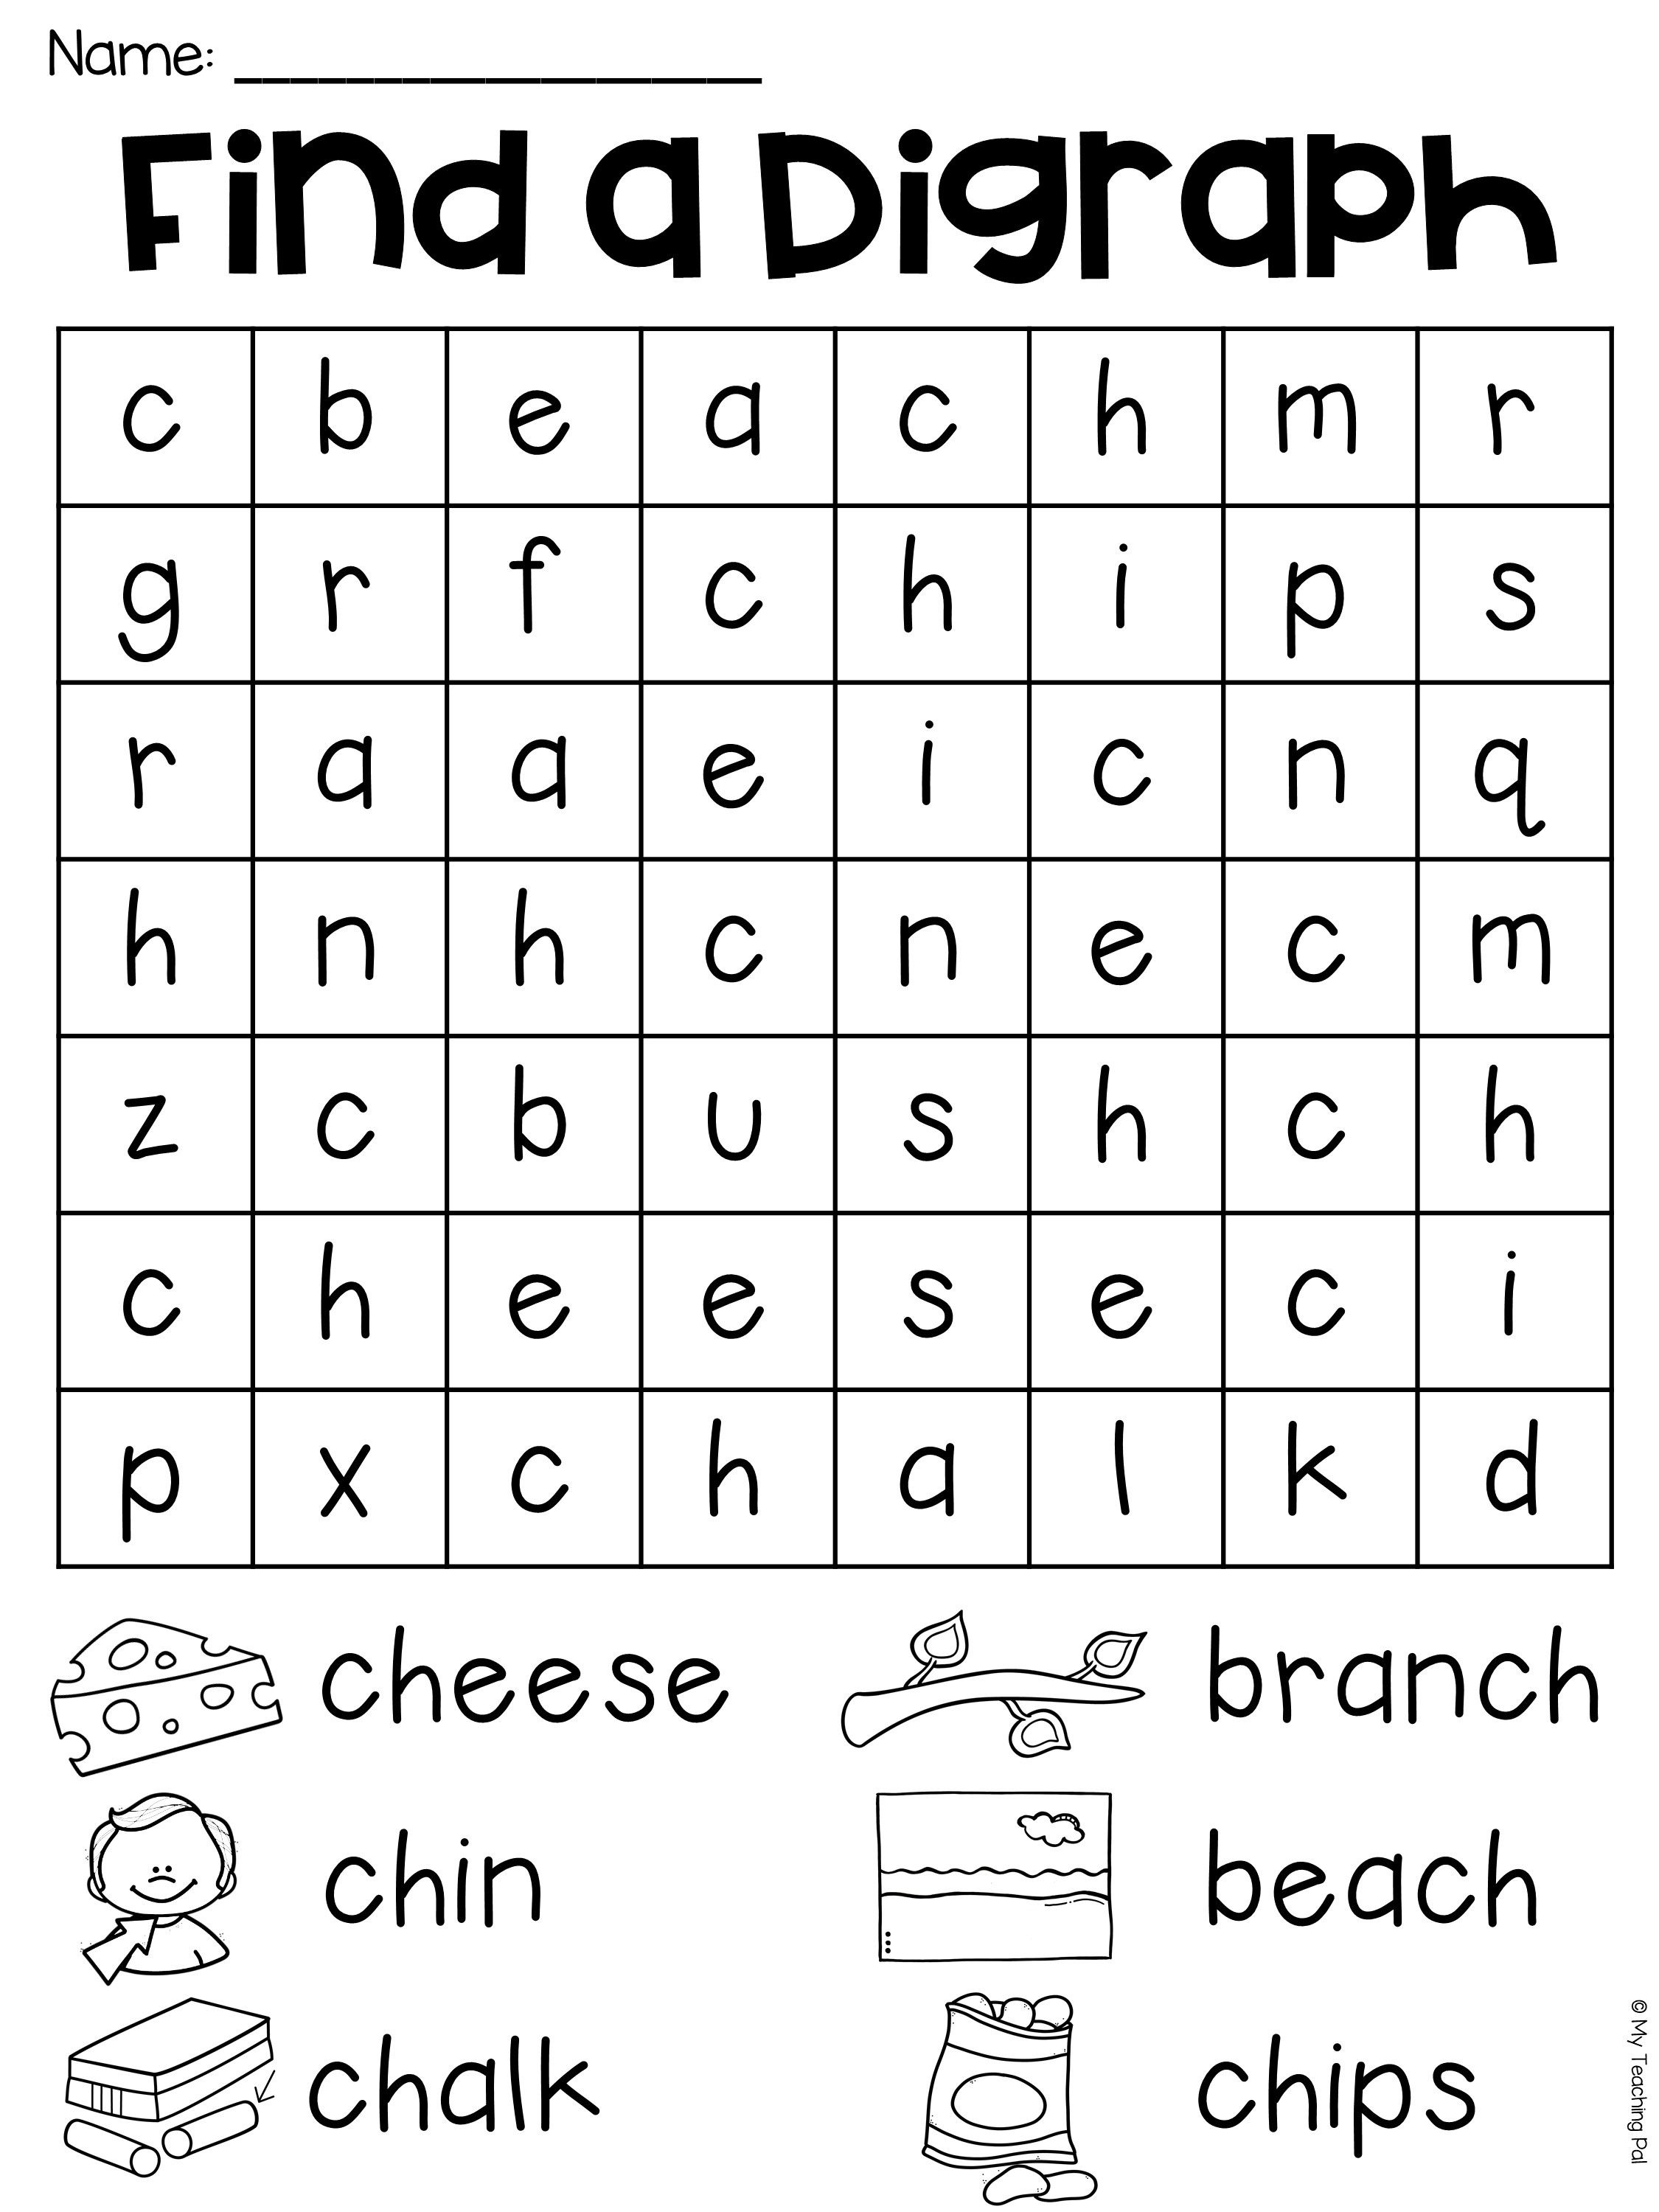 Free Printable Ch Digraph Worksheets